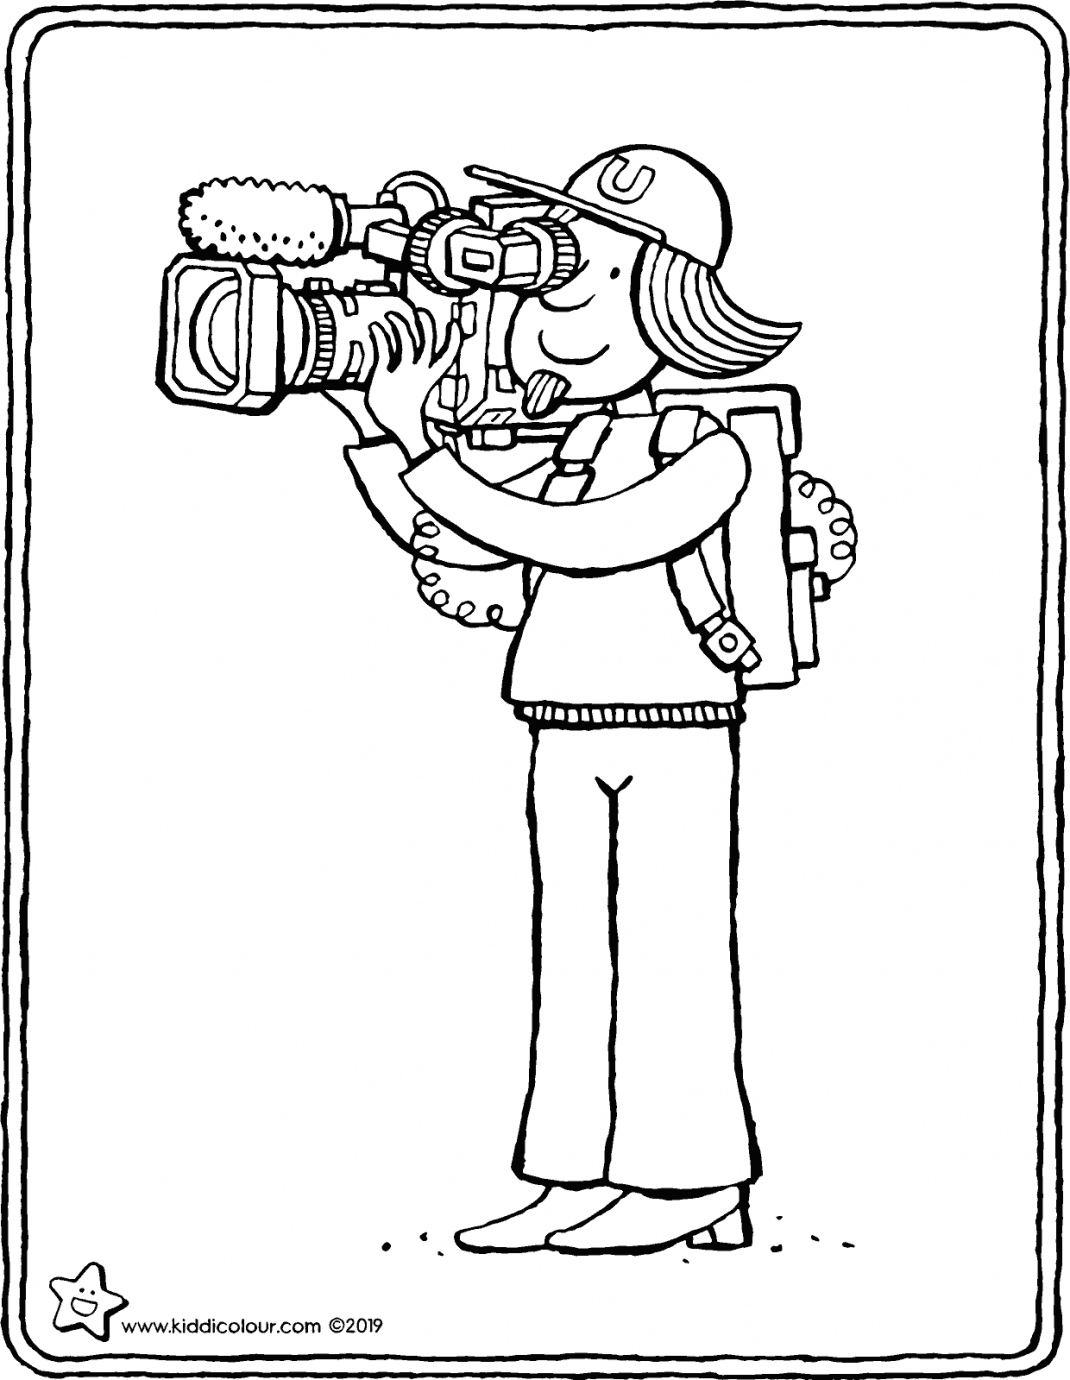 cameraman colouring page drawing picture 01V